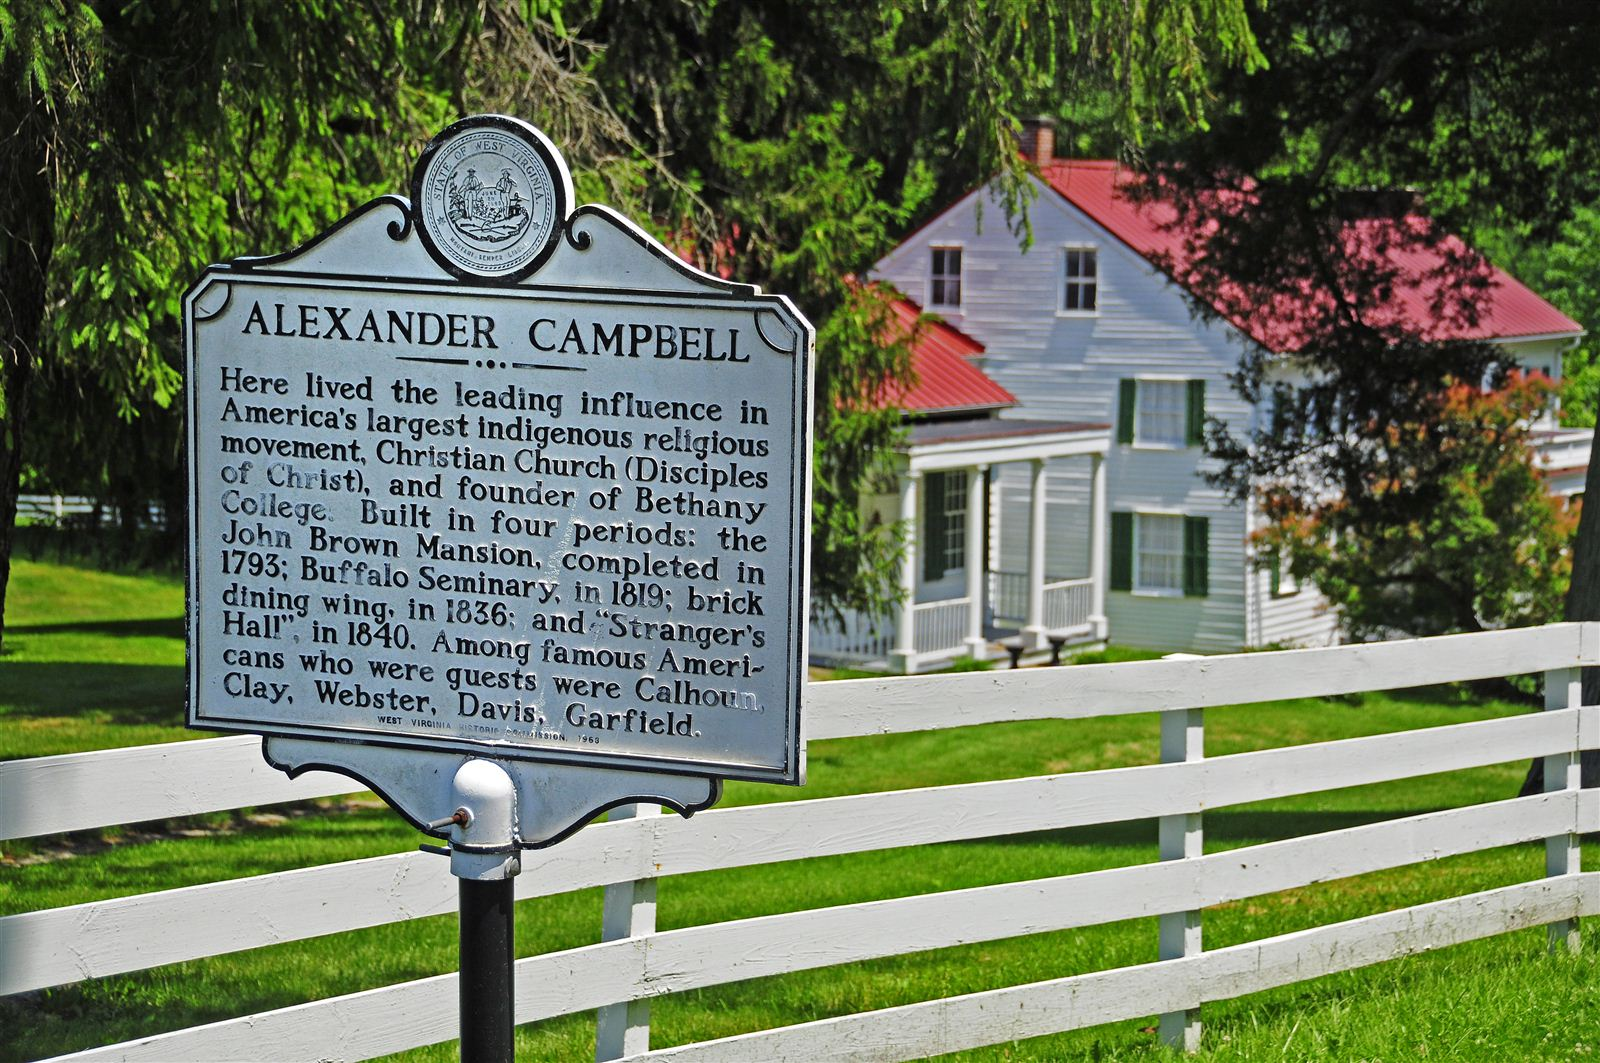 Historical Marker in front of Alexander Campbell's Mansion